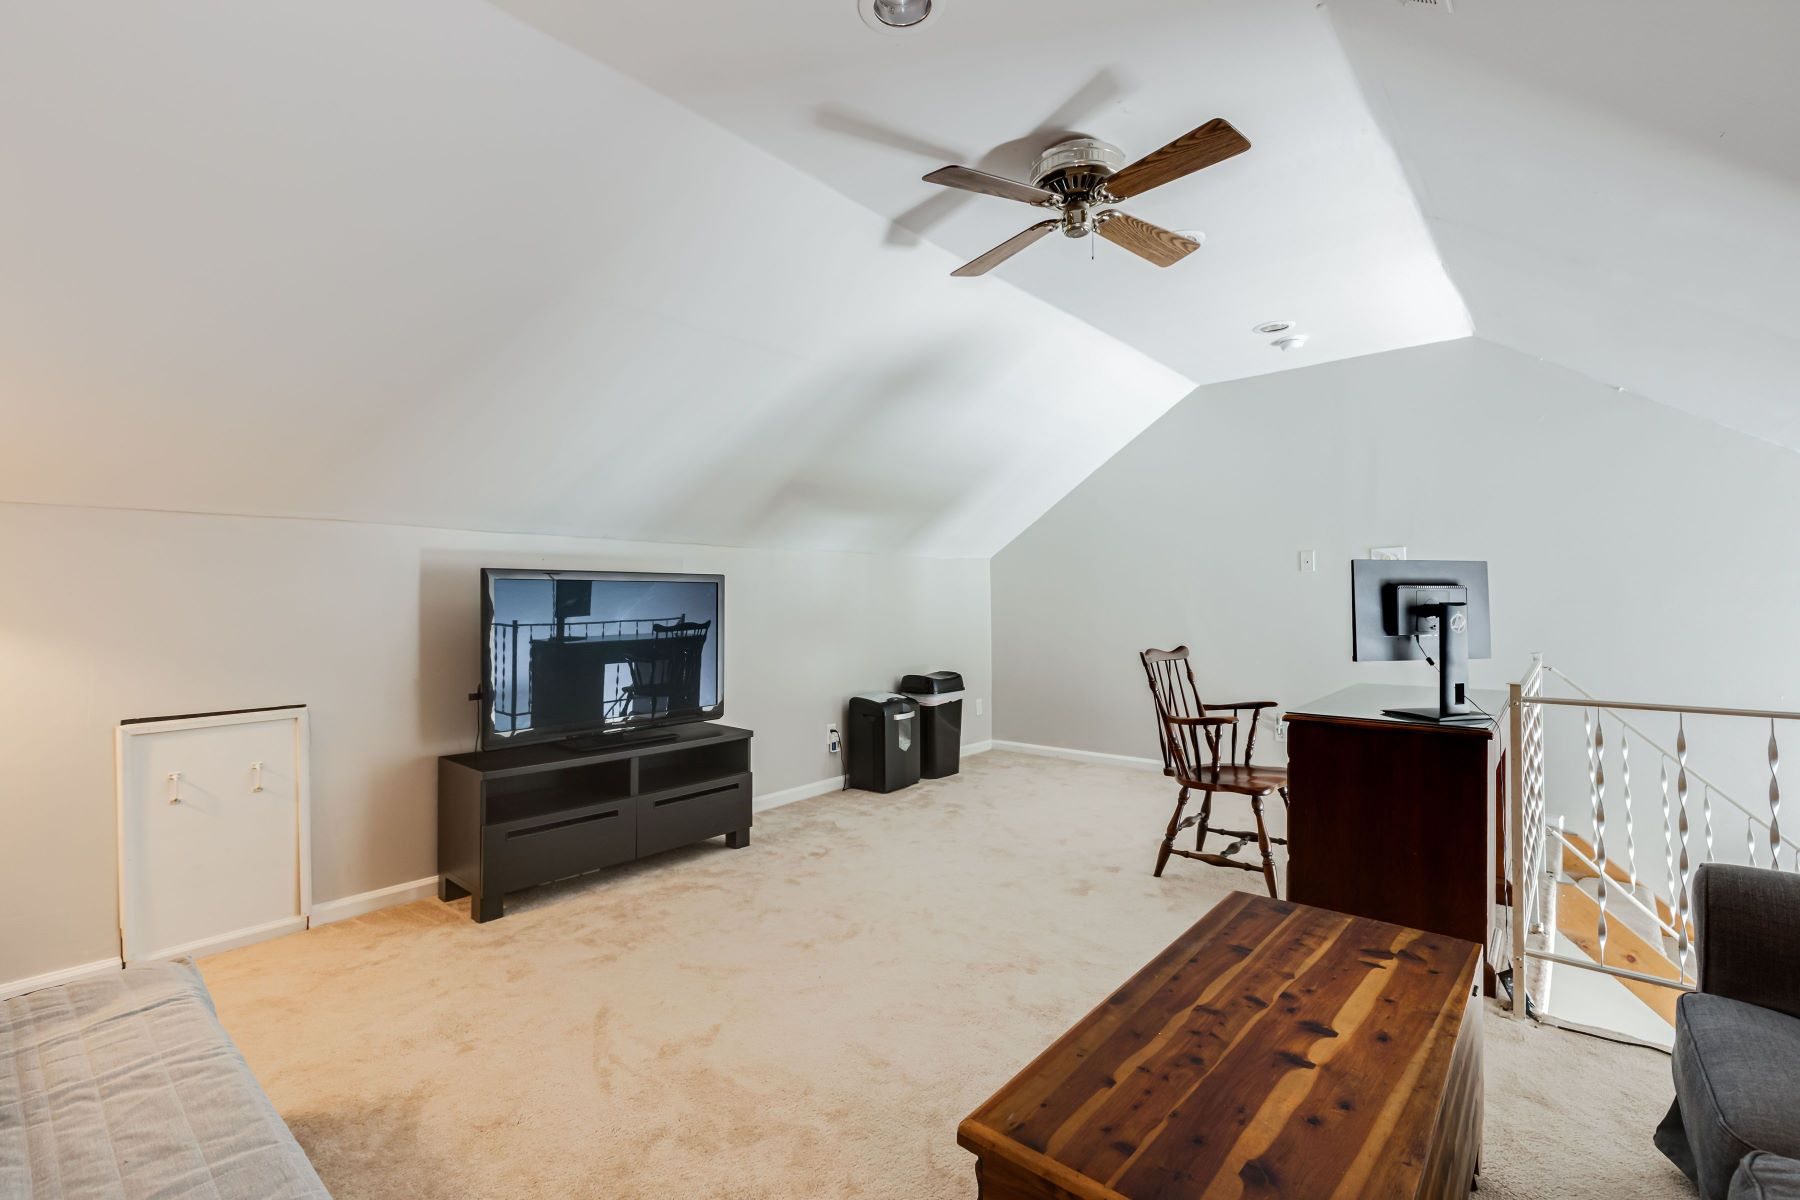 Additional photo for property listing at 9920 Whitney Circle, Henrico, VA 23233 9920 Whitney Circle Henrico, Virginia 23233 United States